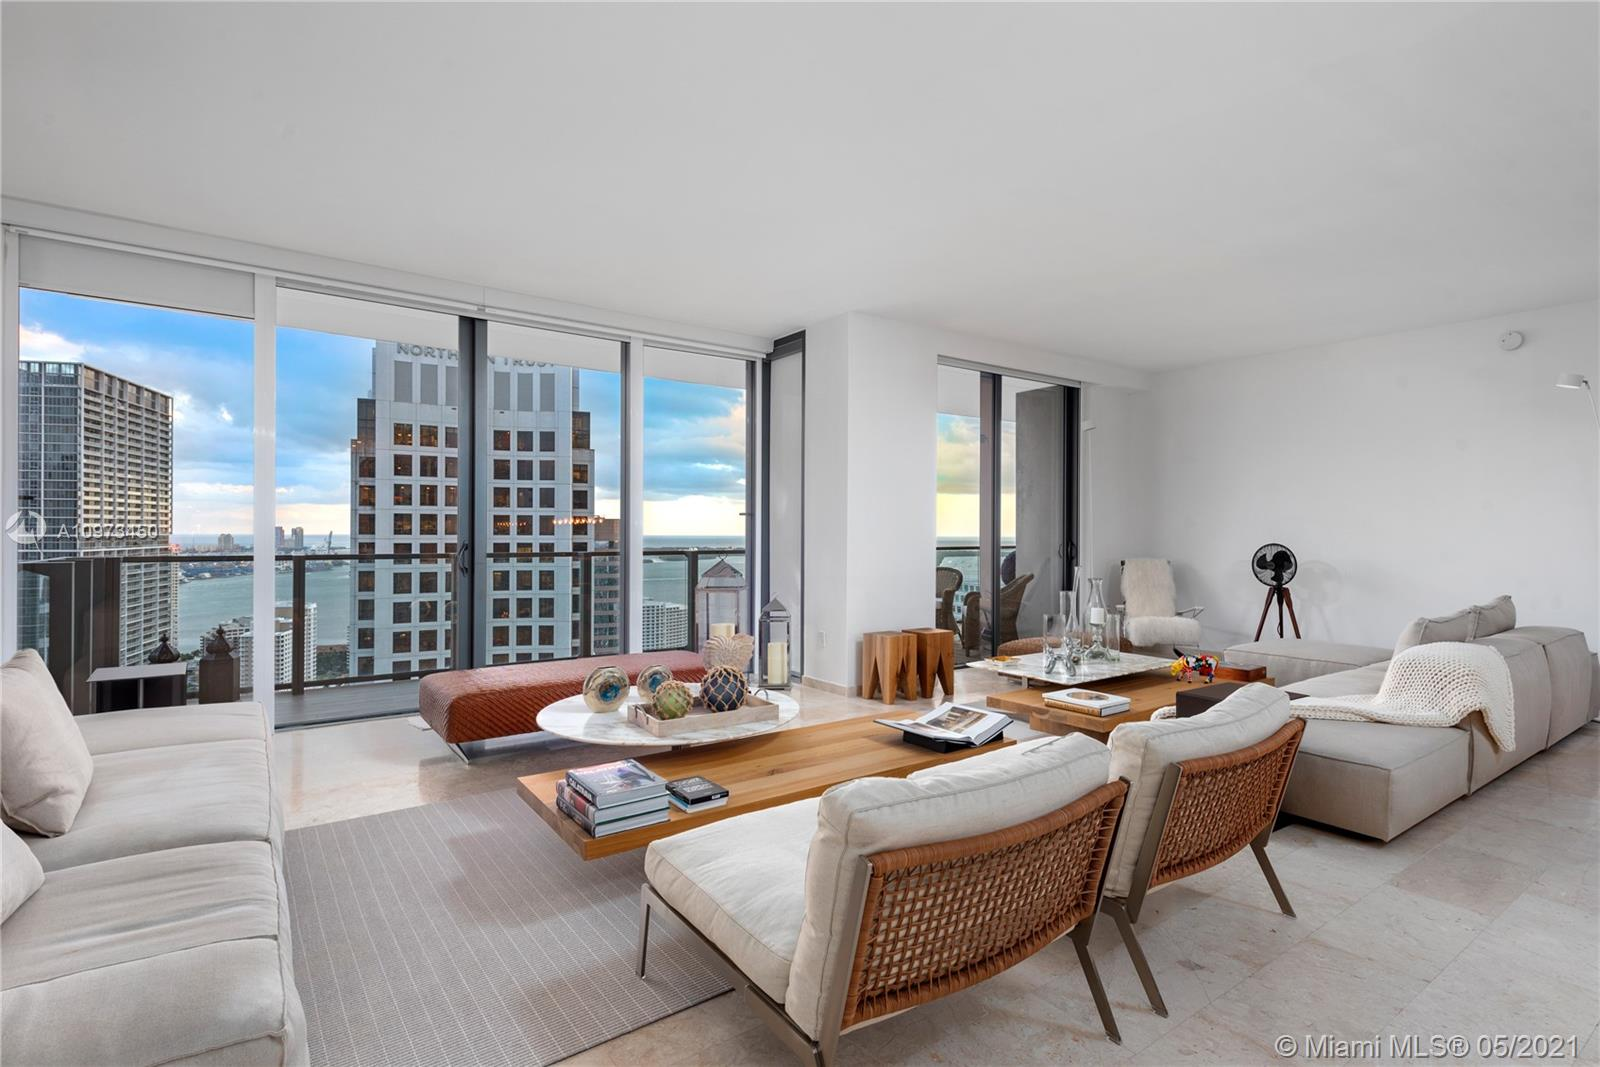 A one of a kind unit at Reach, Brickell City Centre! Spectacular 2+den/3.5 baths unit in the 03 line at Reach Brickell City Centre. Unit was completely re-designed to open up the floor plan and display incredible water views throughout. The residences at Reach are equipped with all top of the line amenities and offer a unique lifestyle that features luxury amenities such as a fully attended pool and spa, BBQ area, entertainment rooms, and a private cafe. Enjoy living right above Brickell's most elite shopping centre that features high-end luxury brands and incredible culinary experiences Listing is easy to show! Unit also available for short term rent. Unit was converted into a two bedroom to open up floorpan but could be easily converted back to a three bedroom